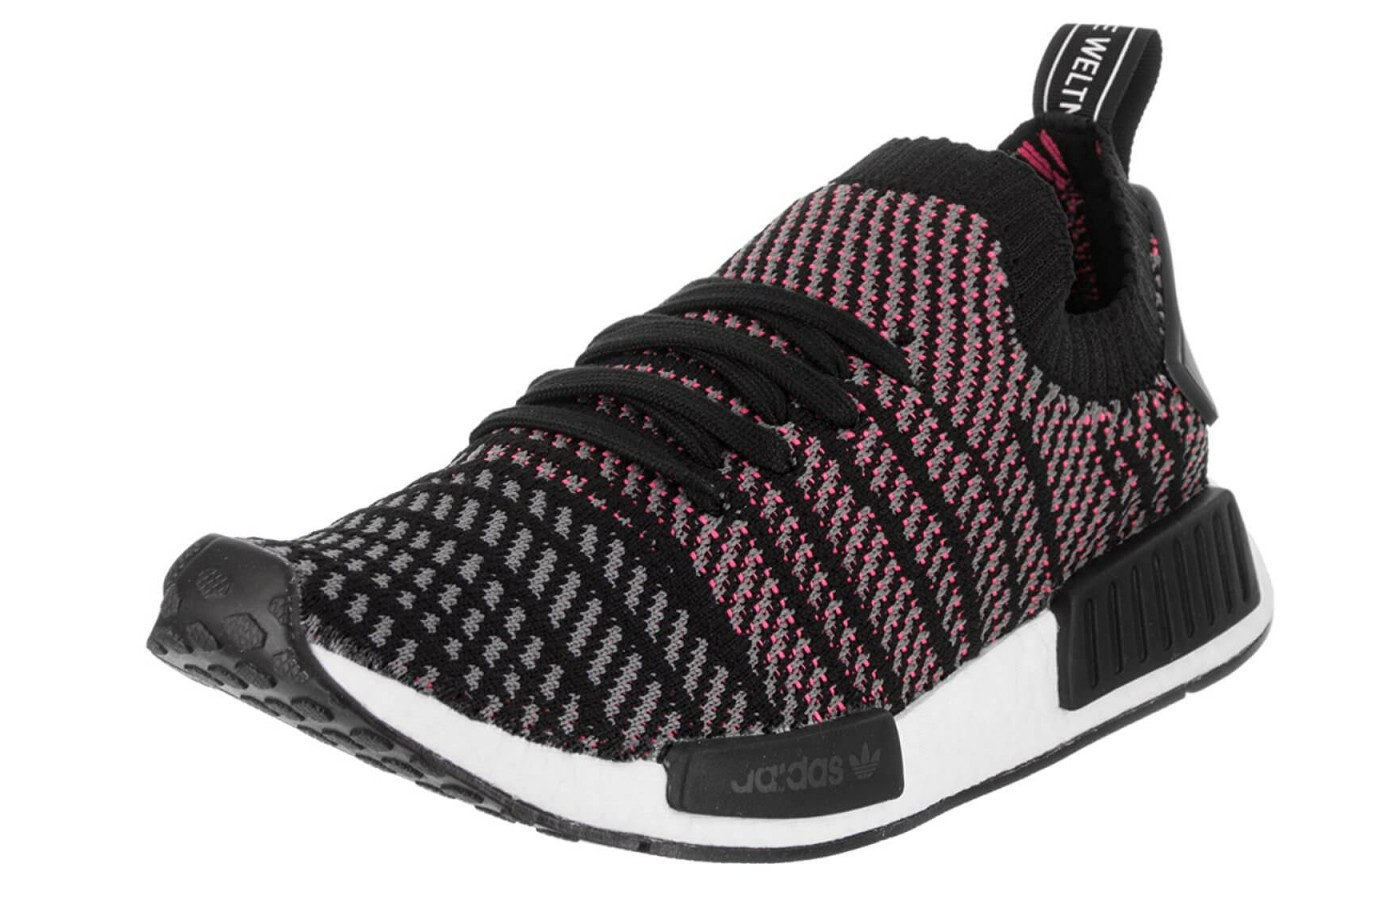 check out dcbec a2a3a Adidas NMD R1 Fully Reviewed and Compared